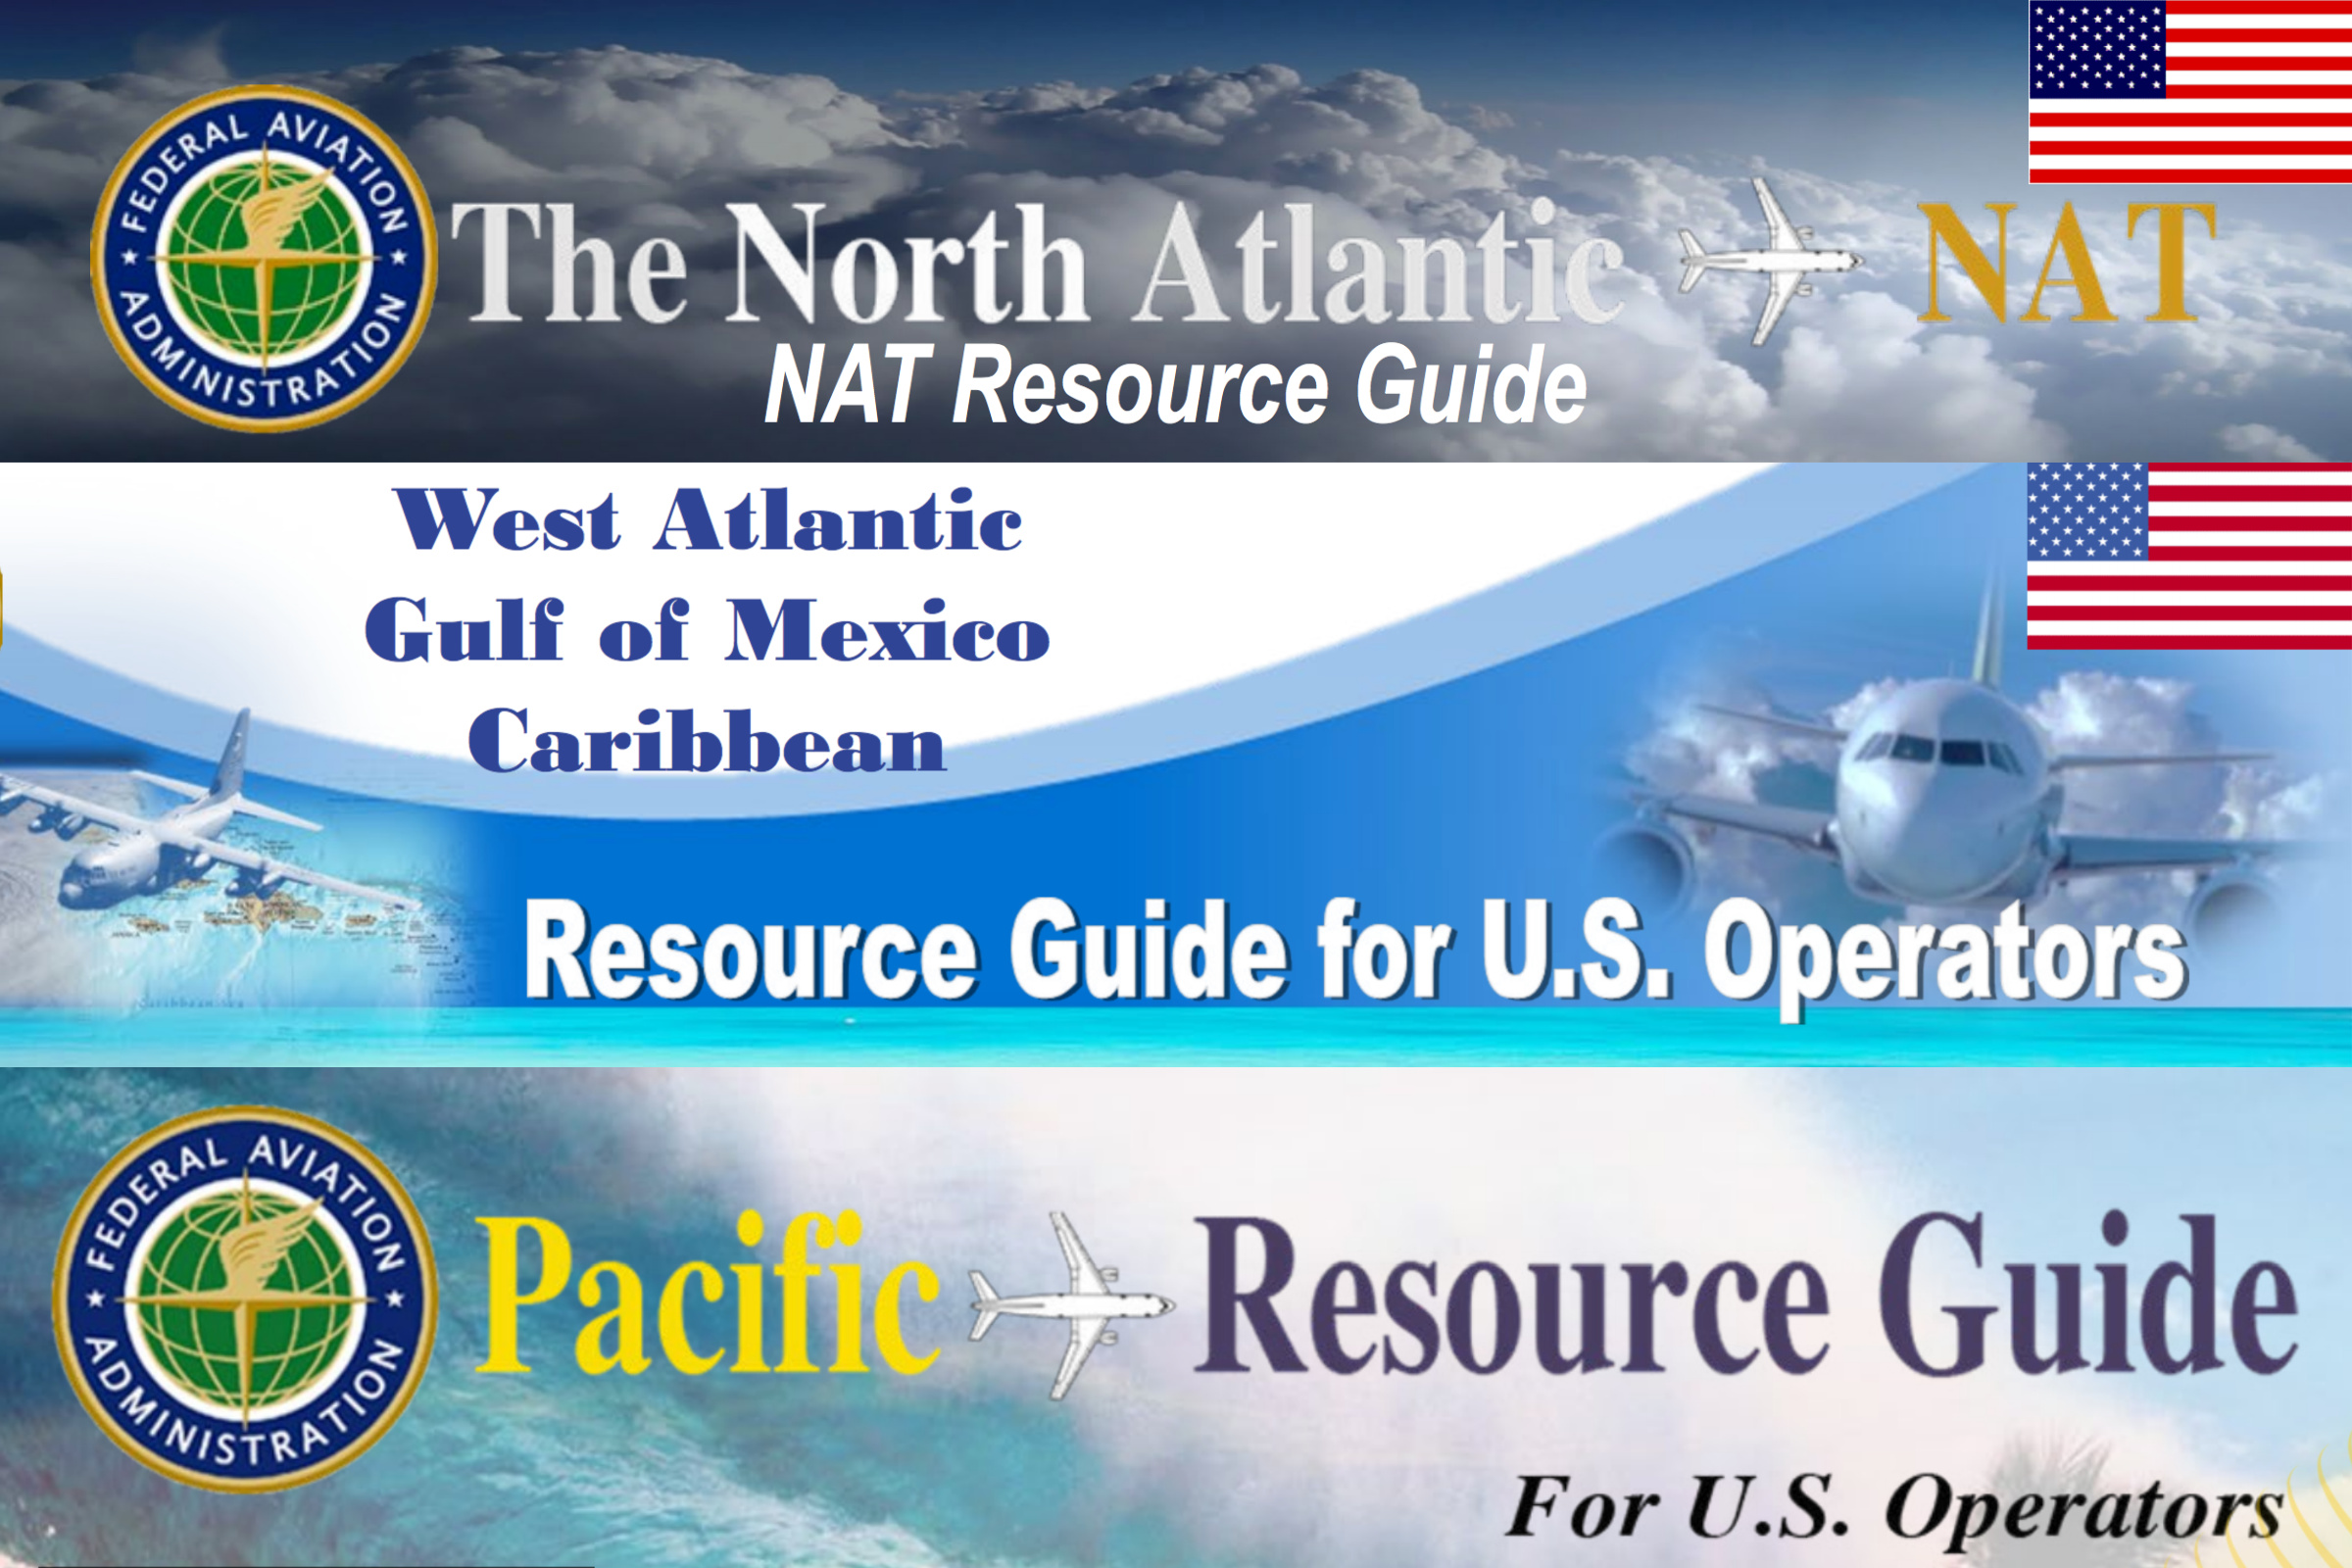 Updated FAA Oceanic Guides